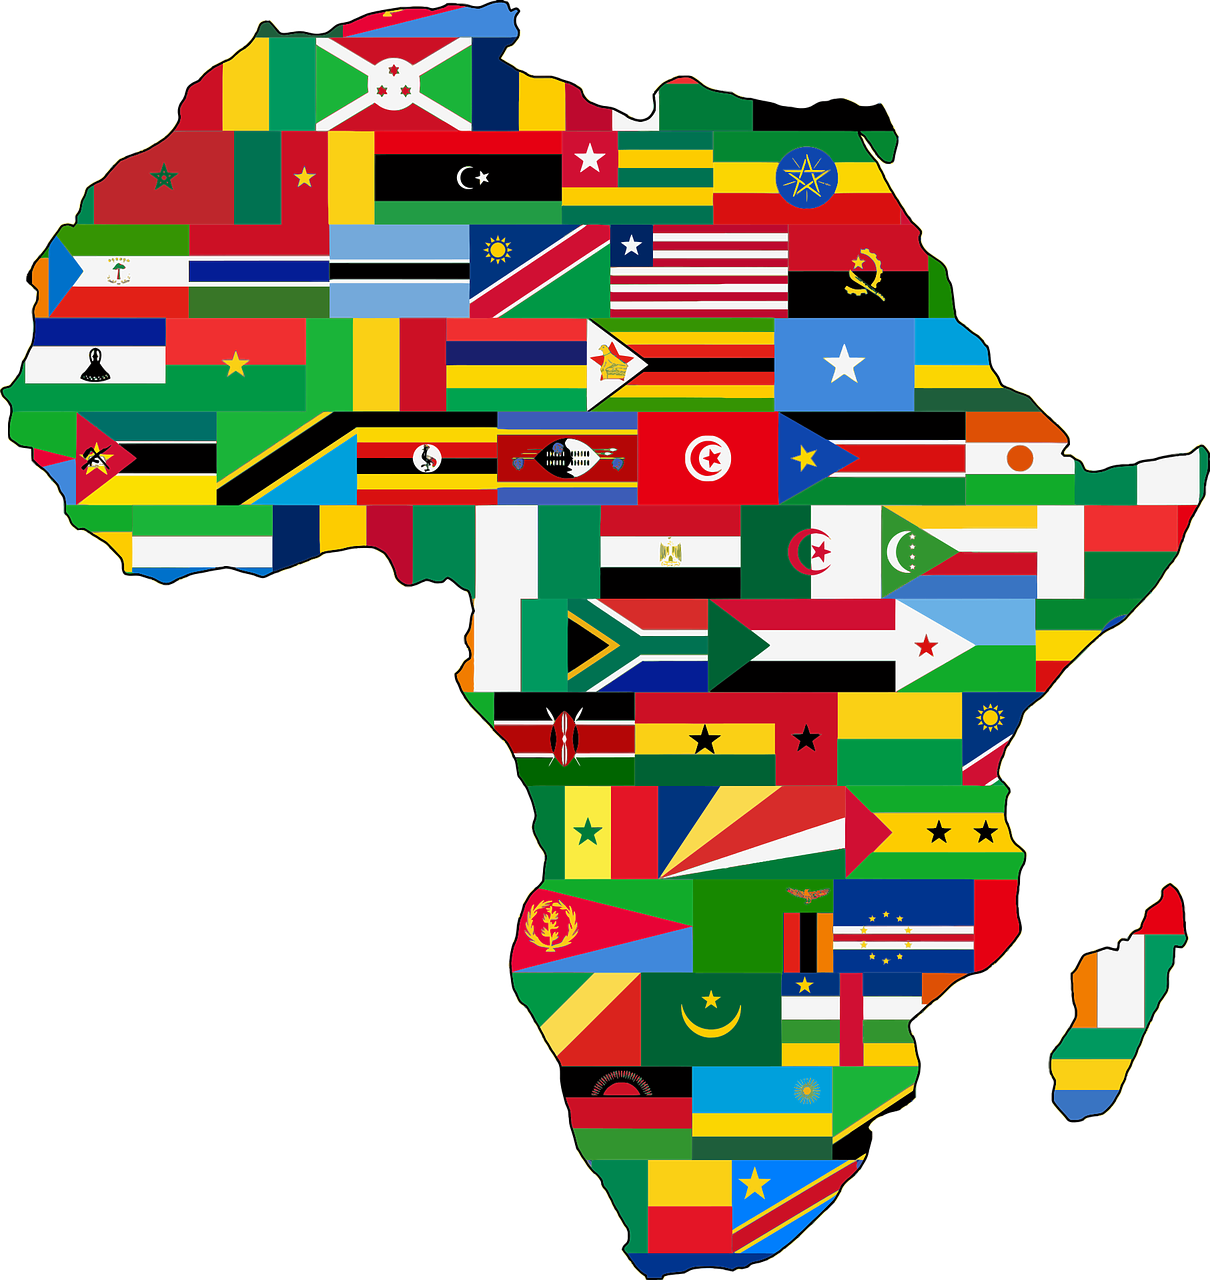 Map of Africa with the individual countries represented by their flags.